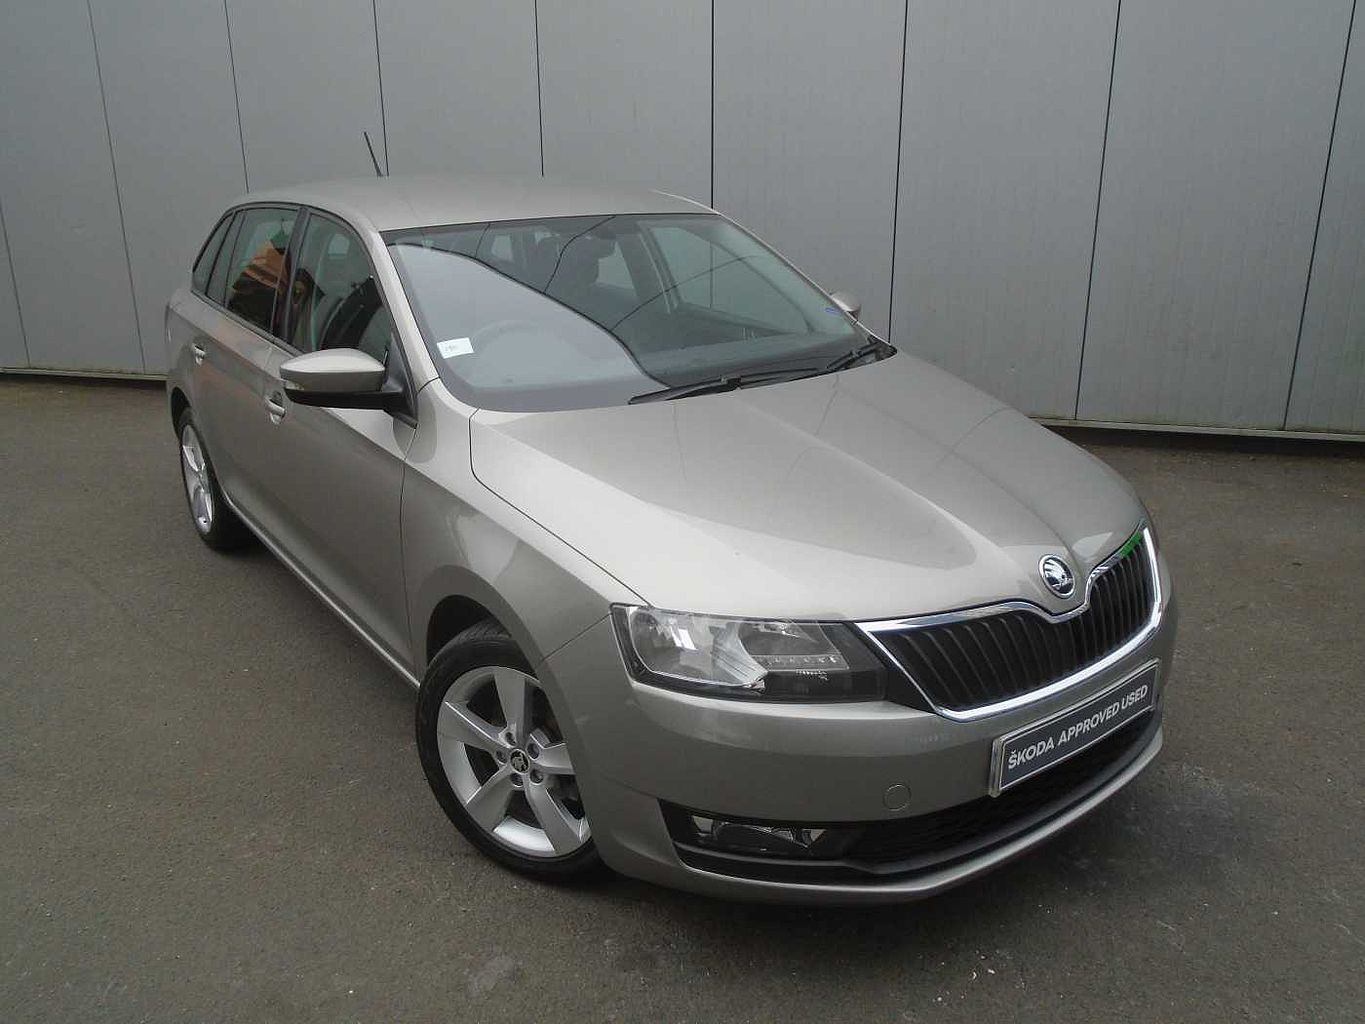 ŠKODA Rapid Spaceback SE Tech 1.0 TSI 95 PS DSG